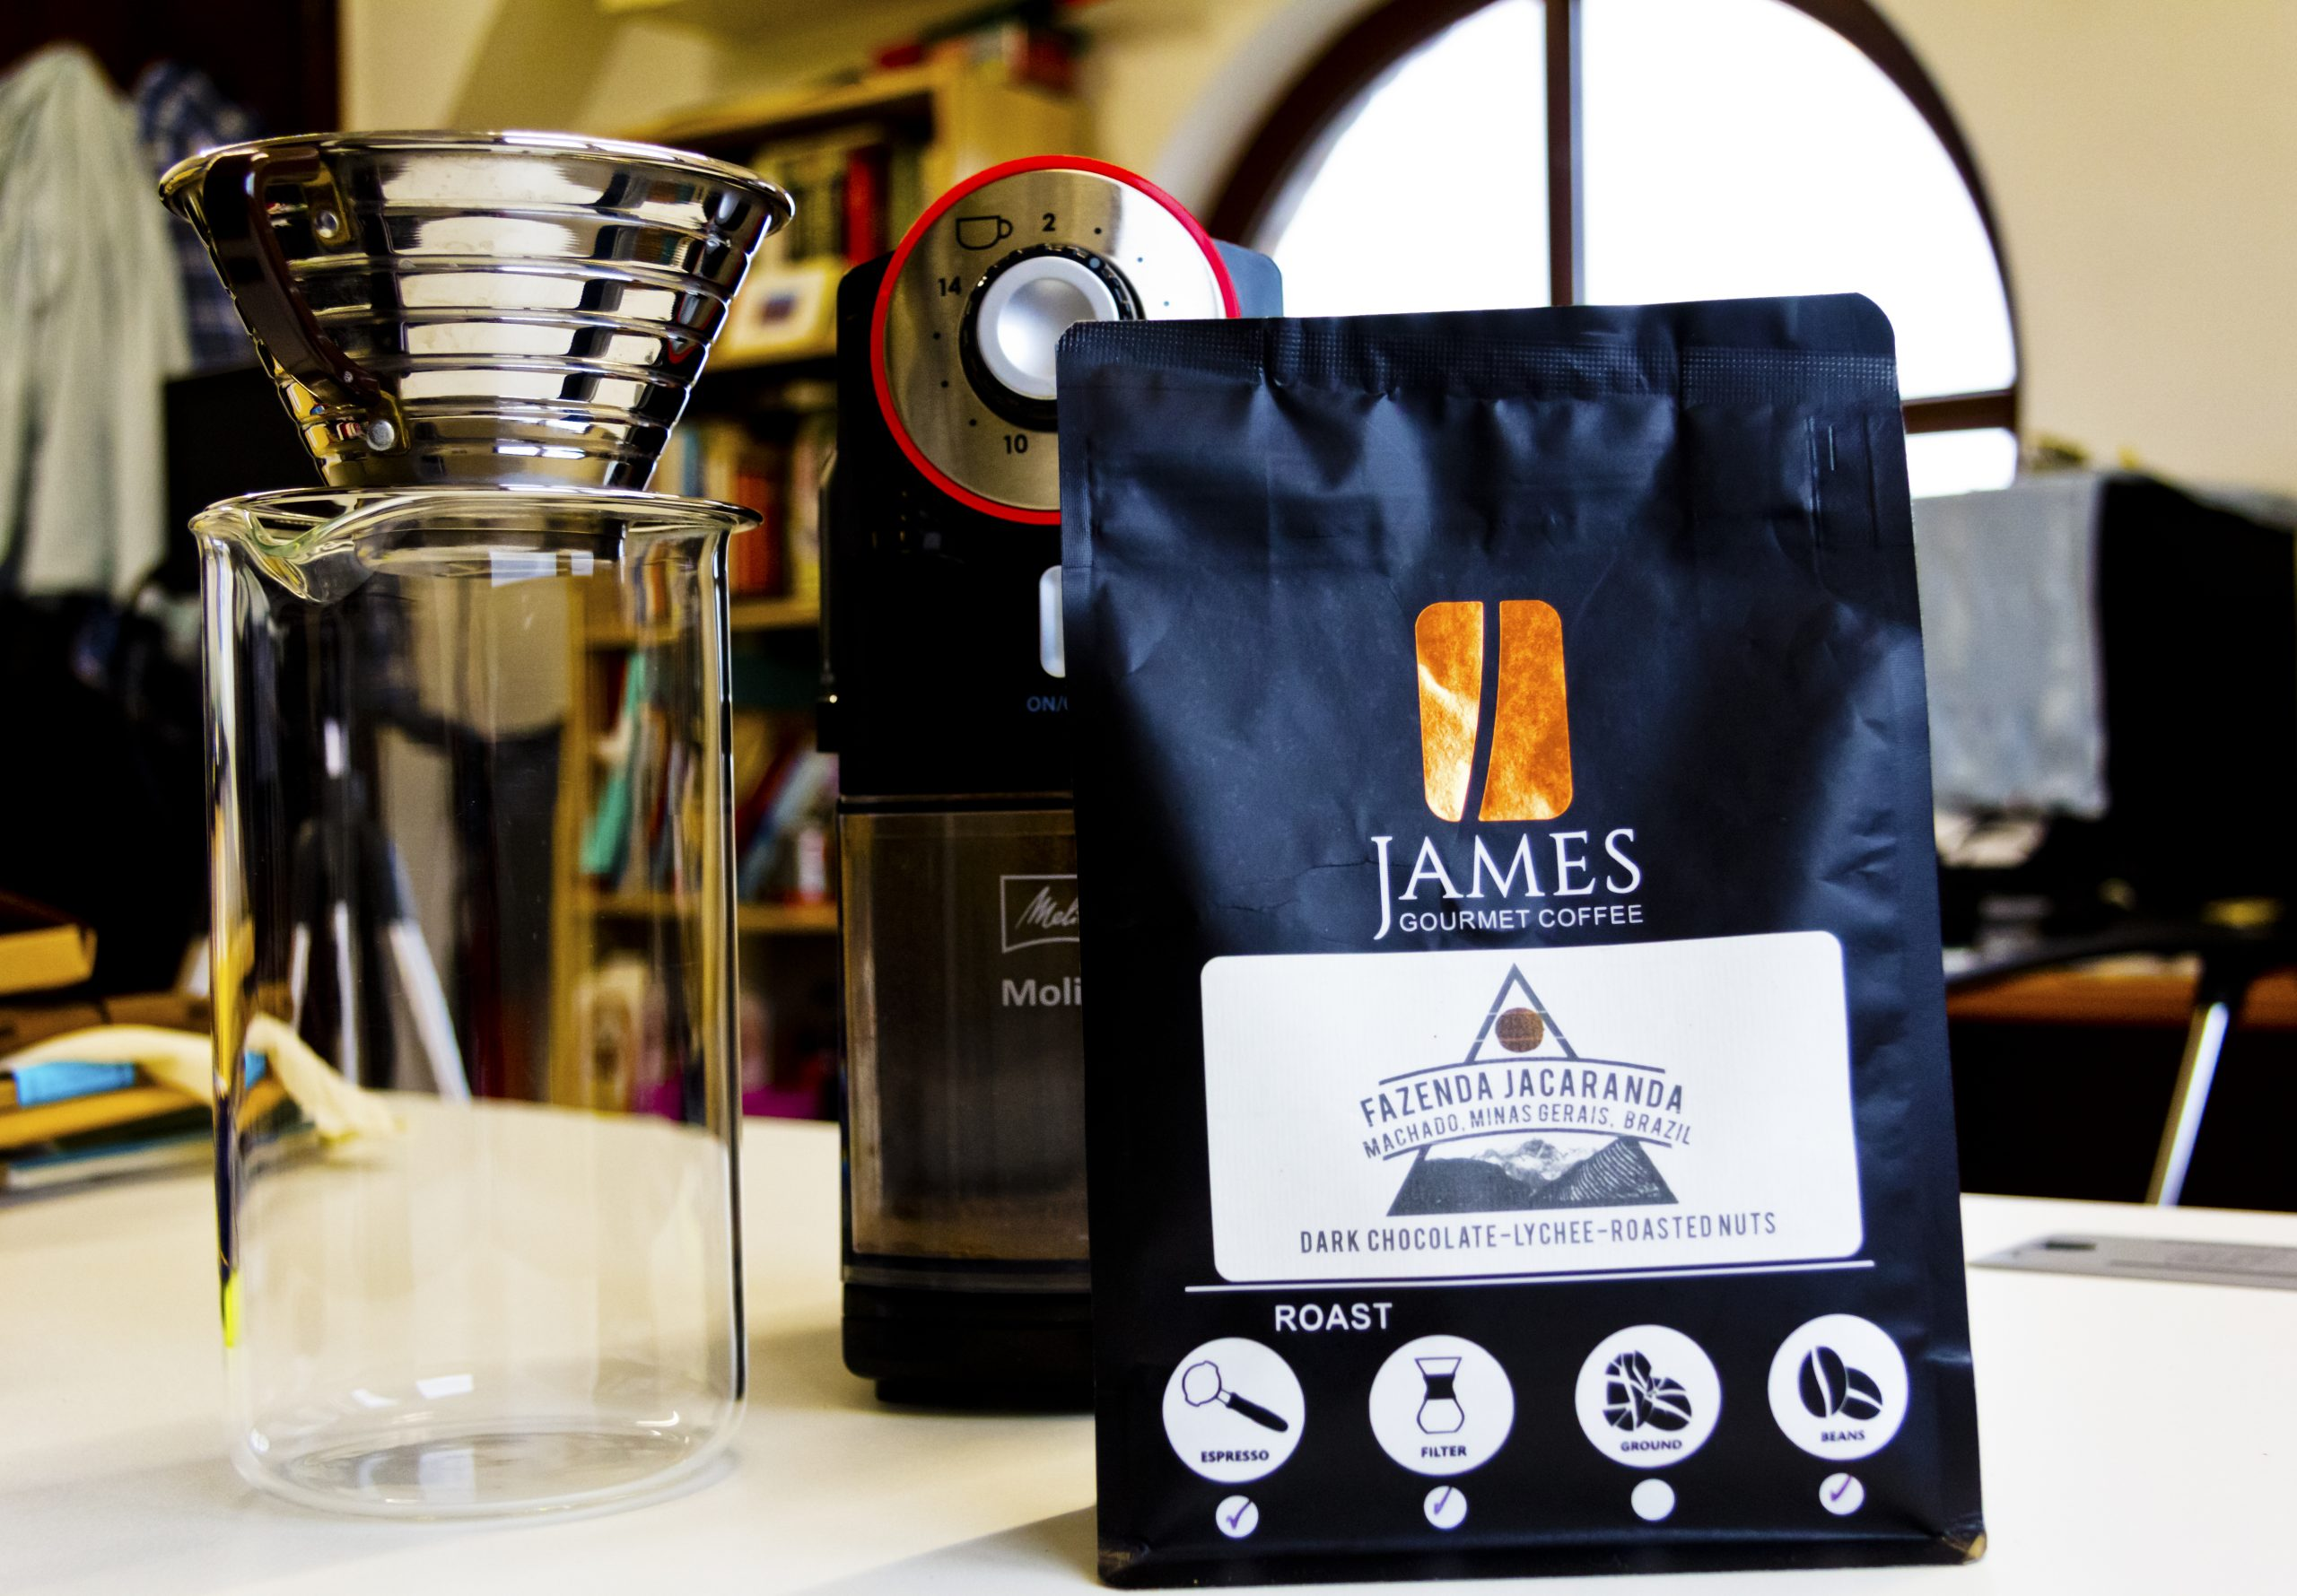 James Gourmet Coffee Beans with Melitla Molino Coffee Grinder and Kalita Wave 185